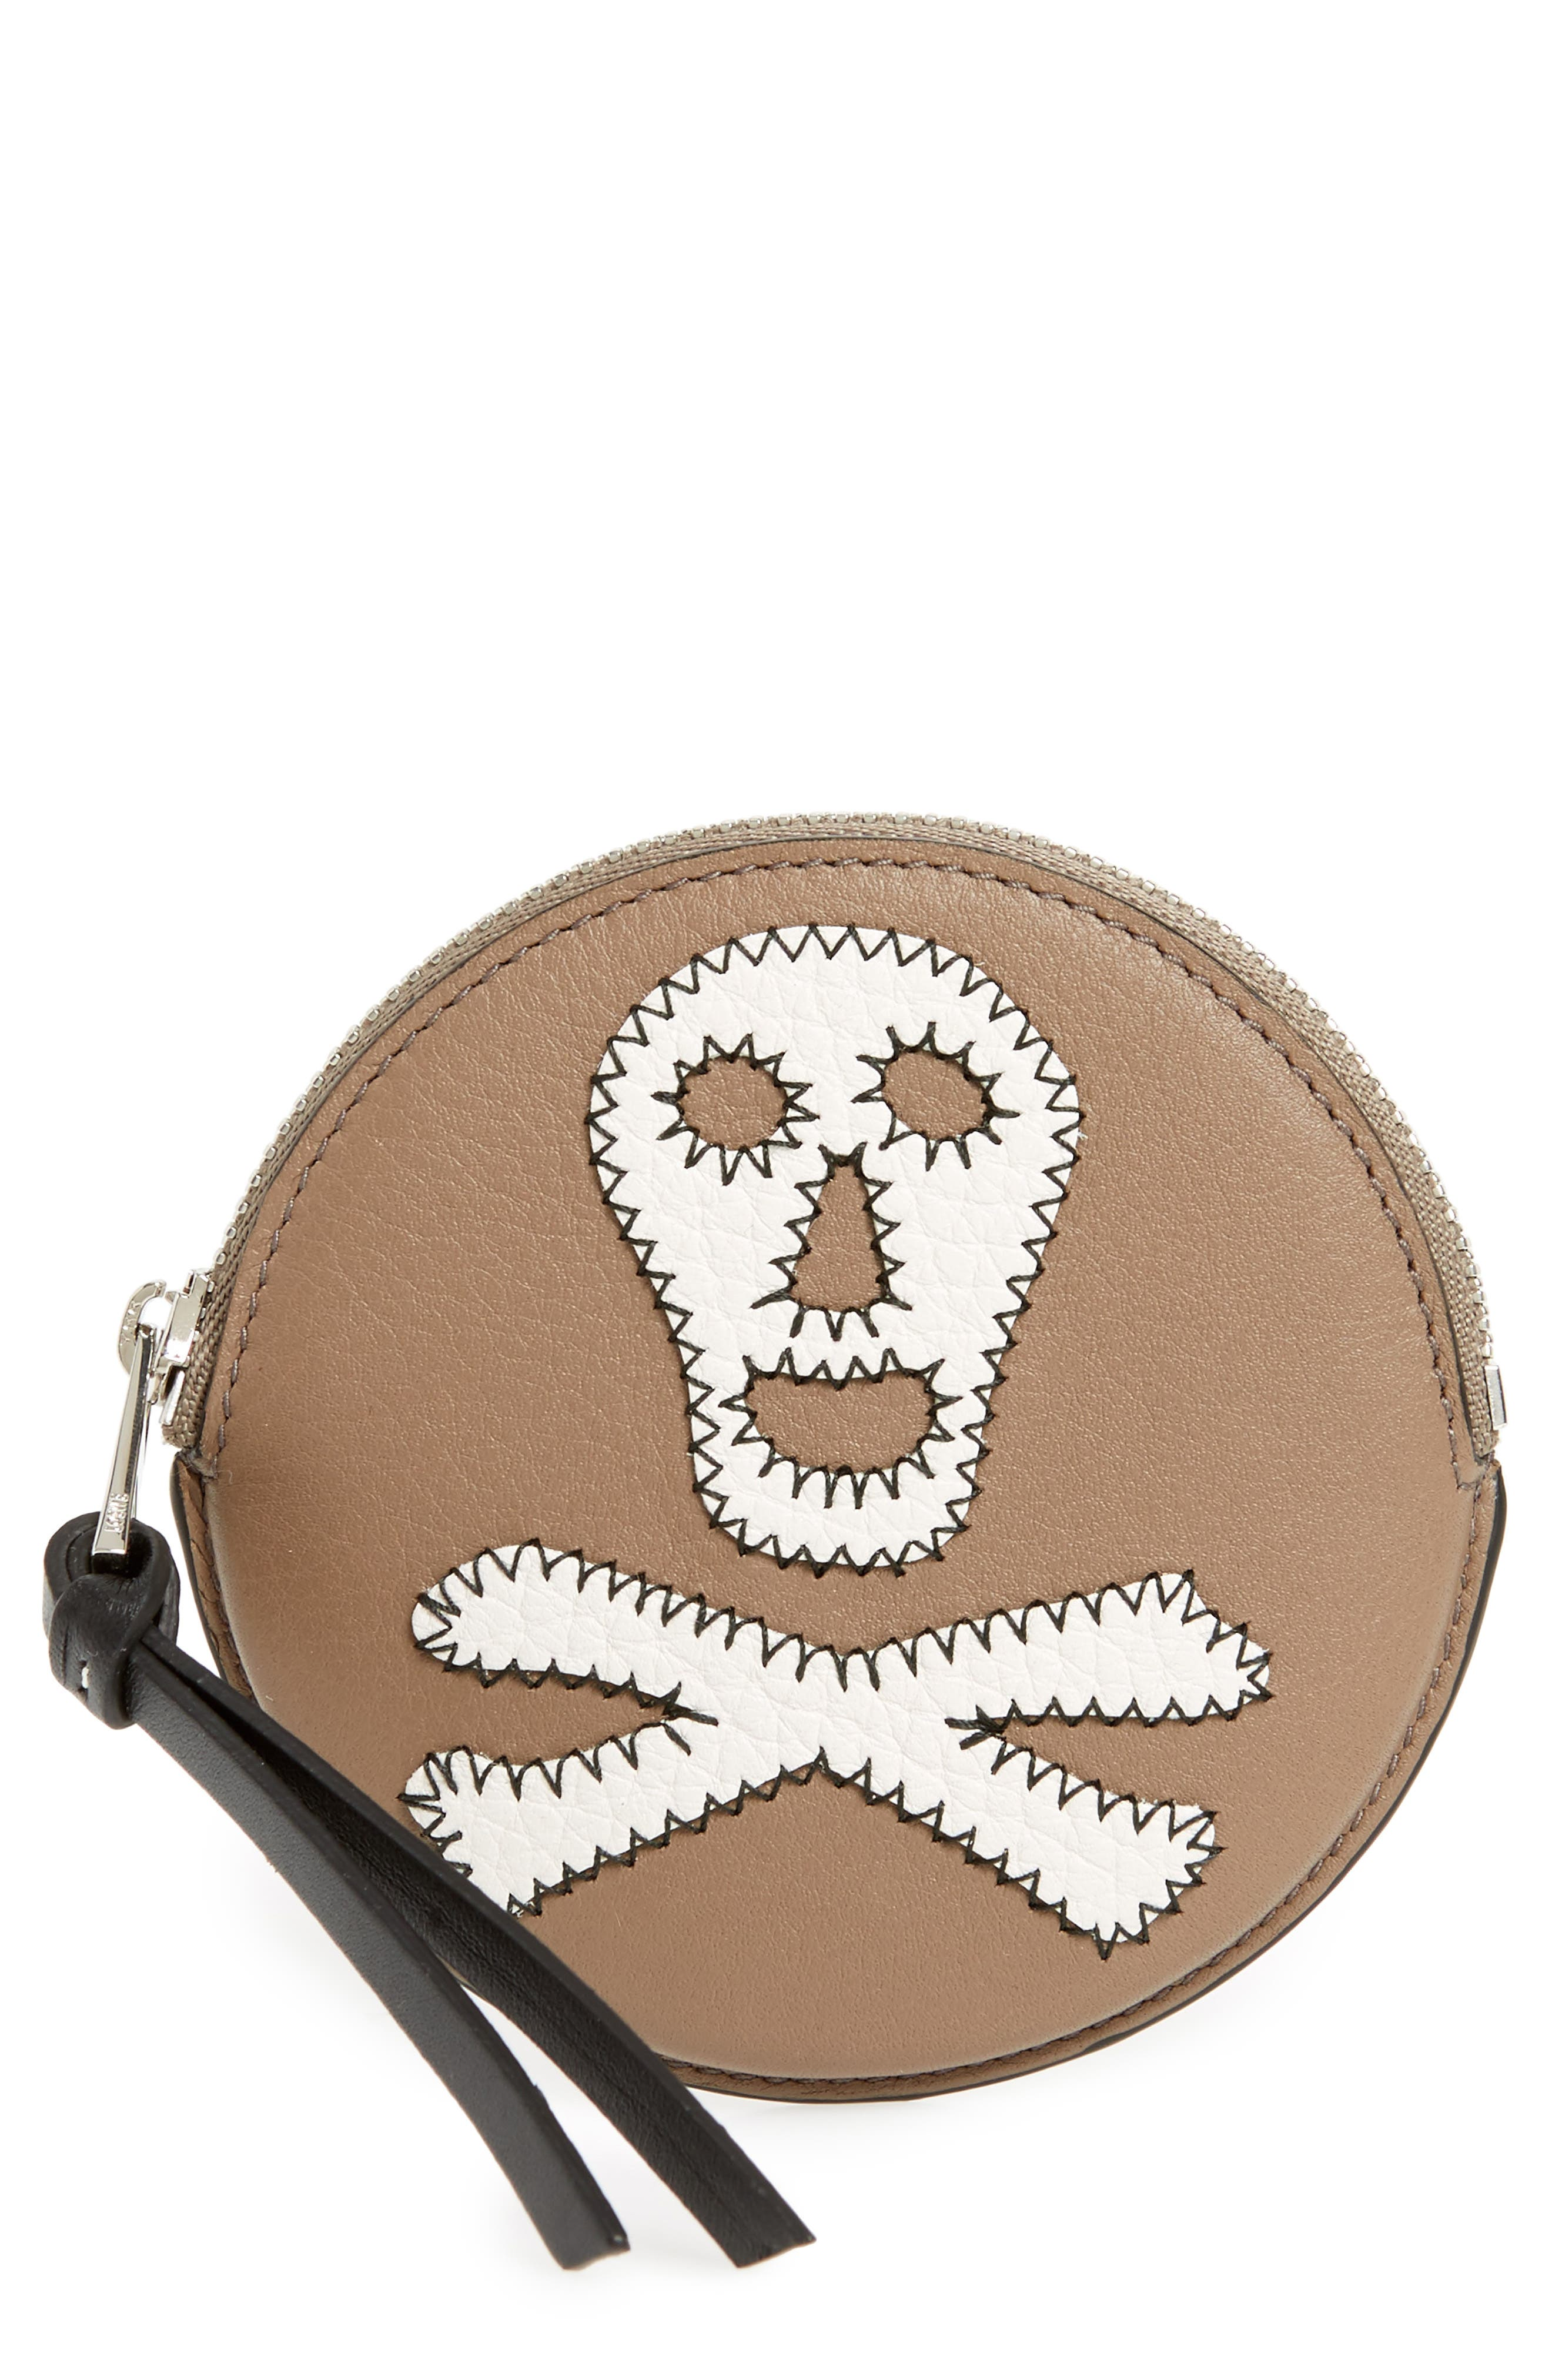 Skull Round Leather Zip Pouch,                         Main,                         color, Dark Taupe/ Tan/ White